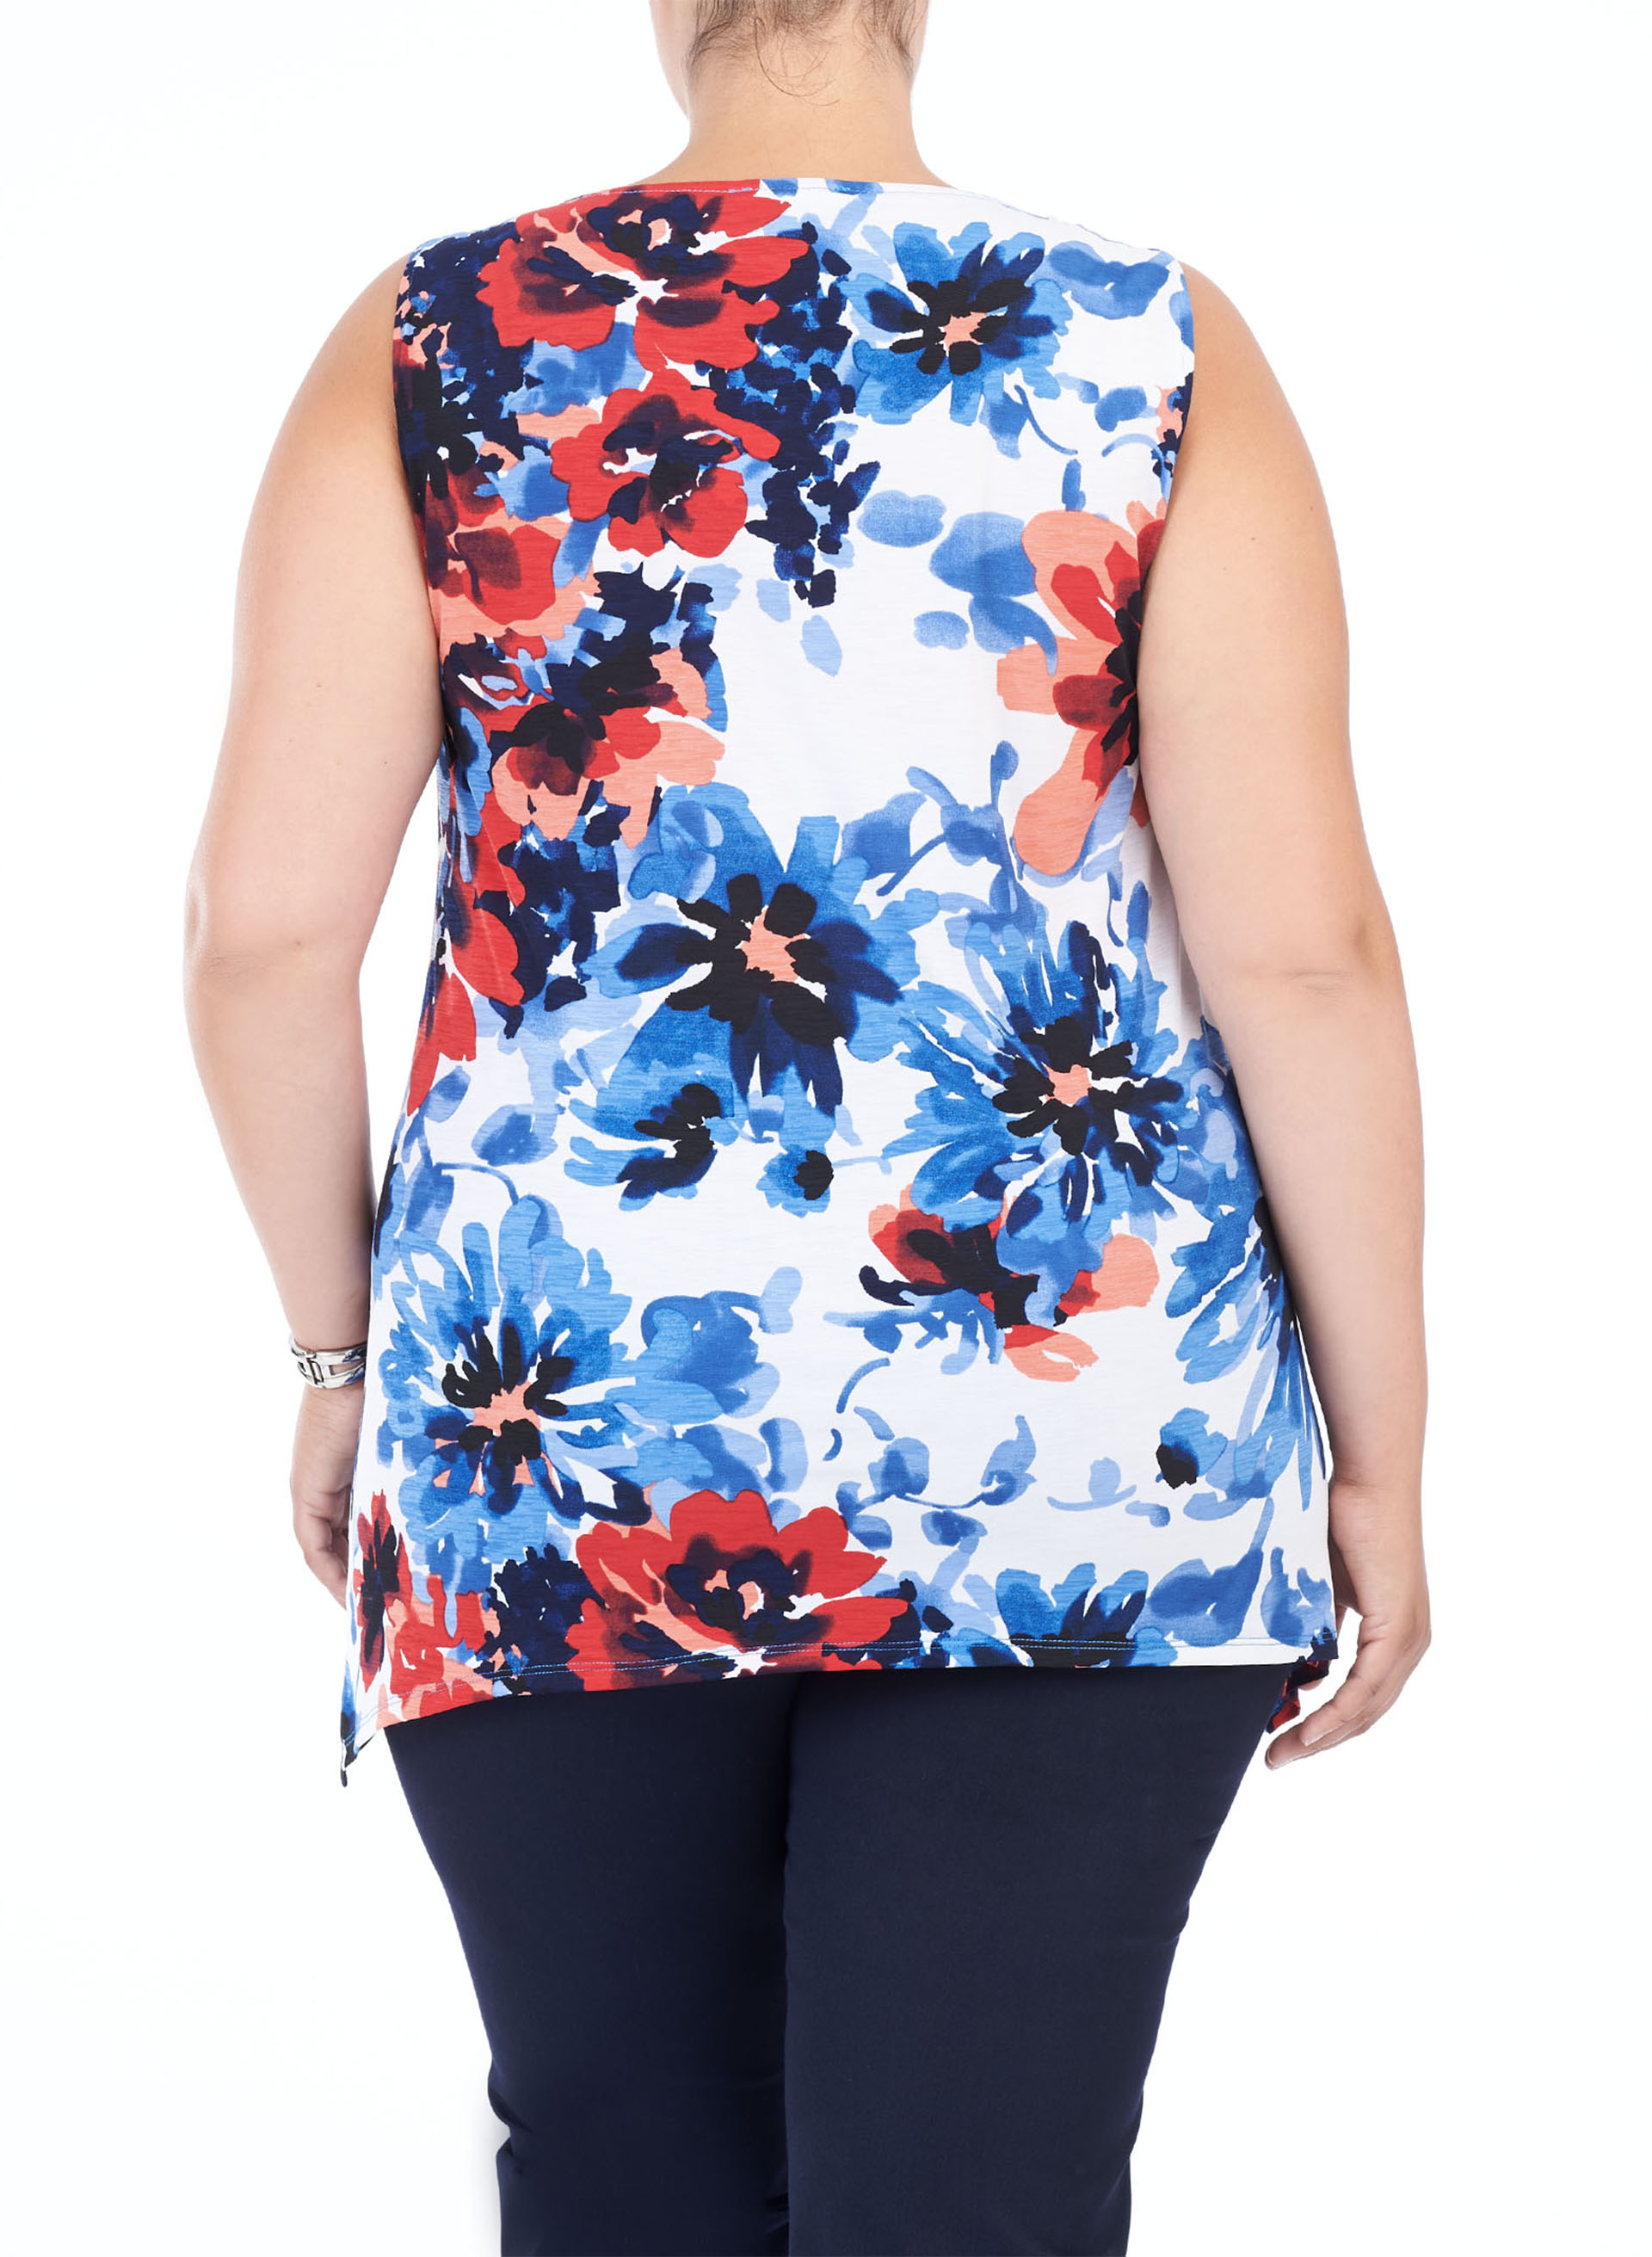 Sleeveless Floral Print Top, White, hi-res